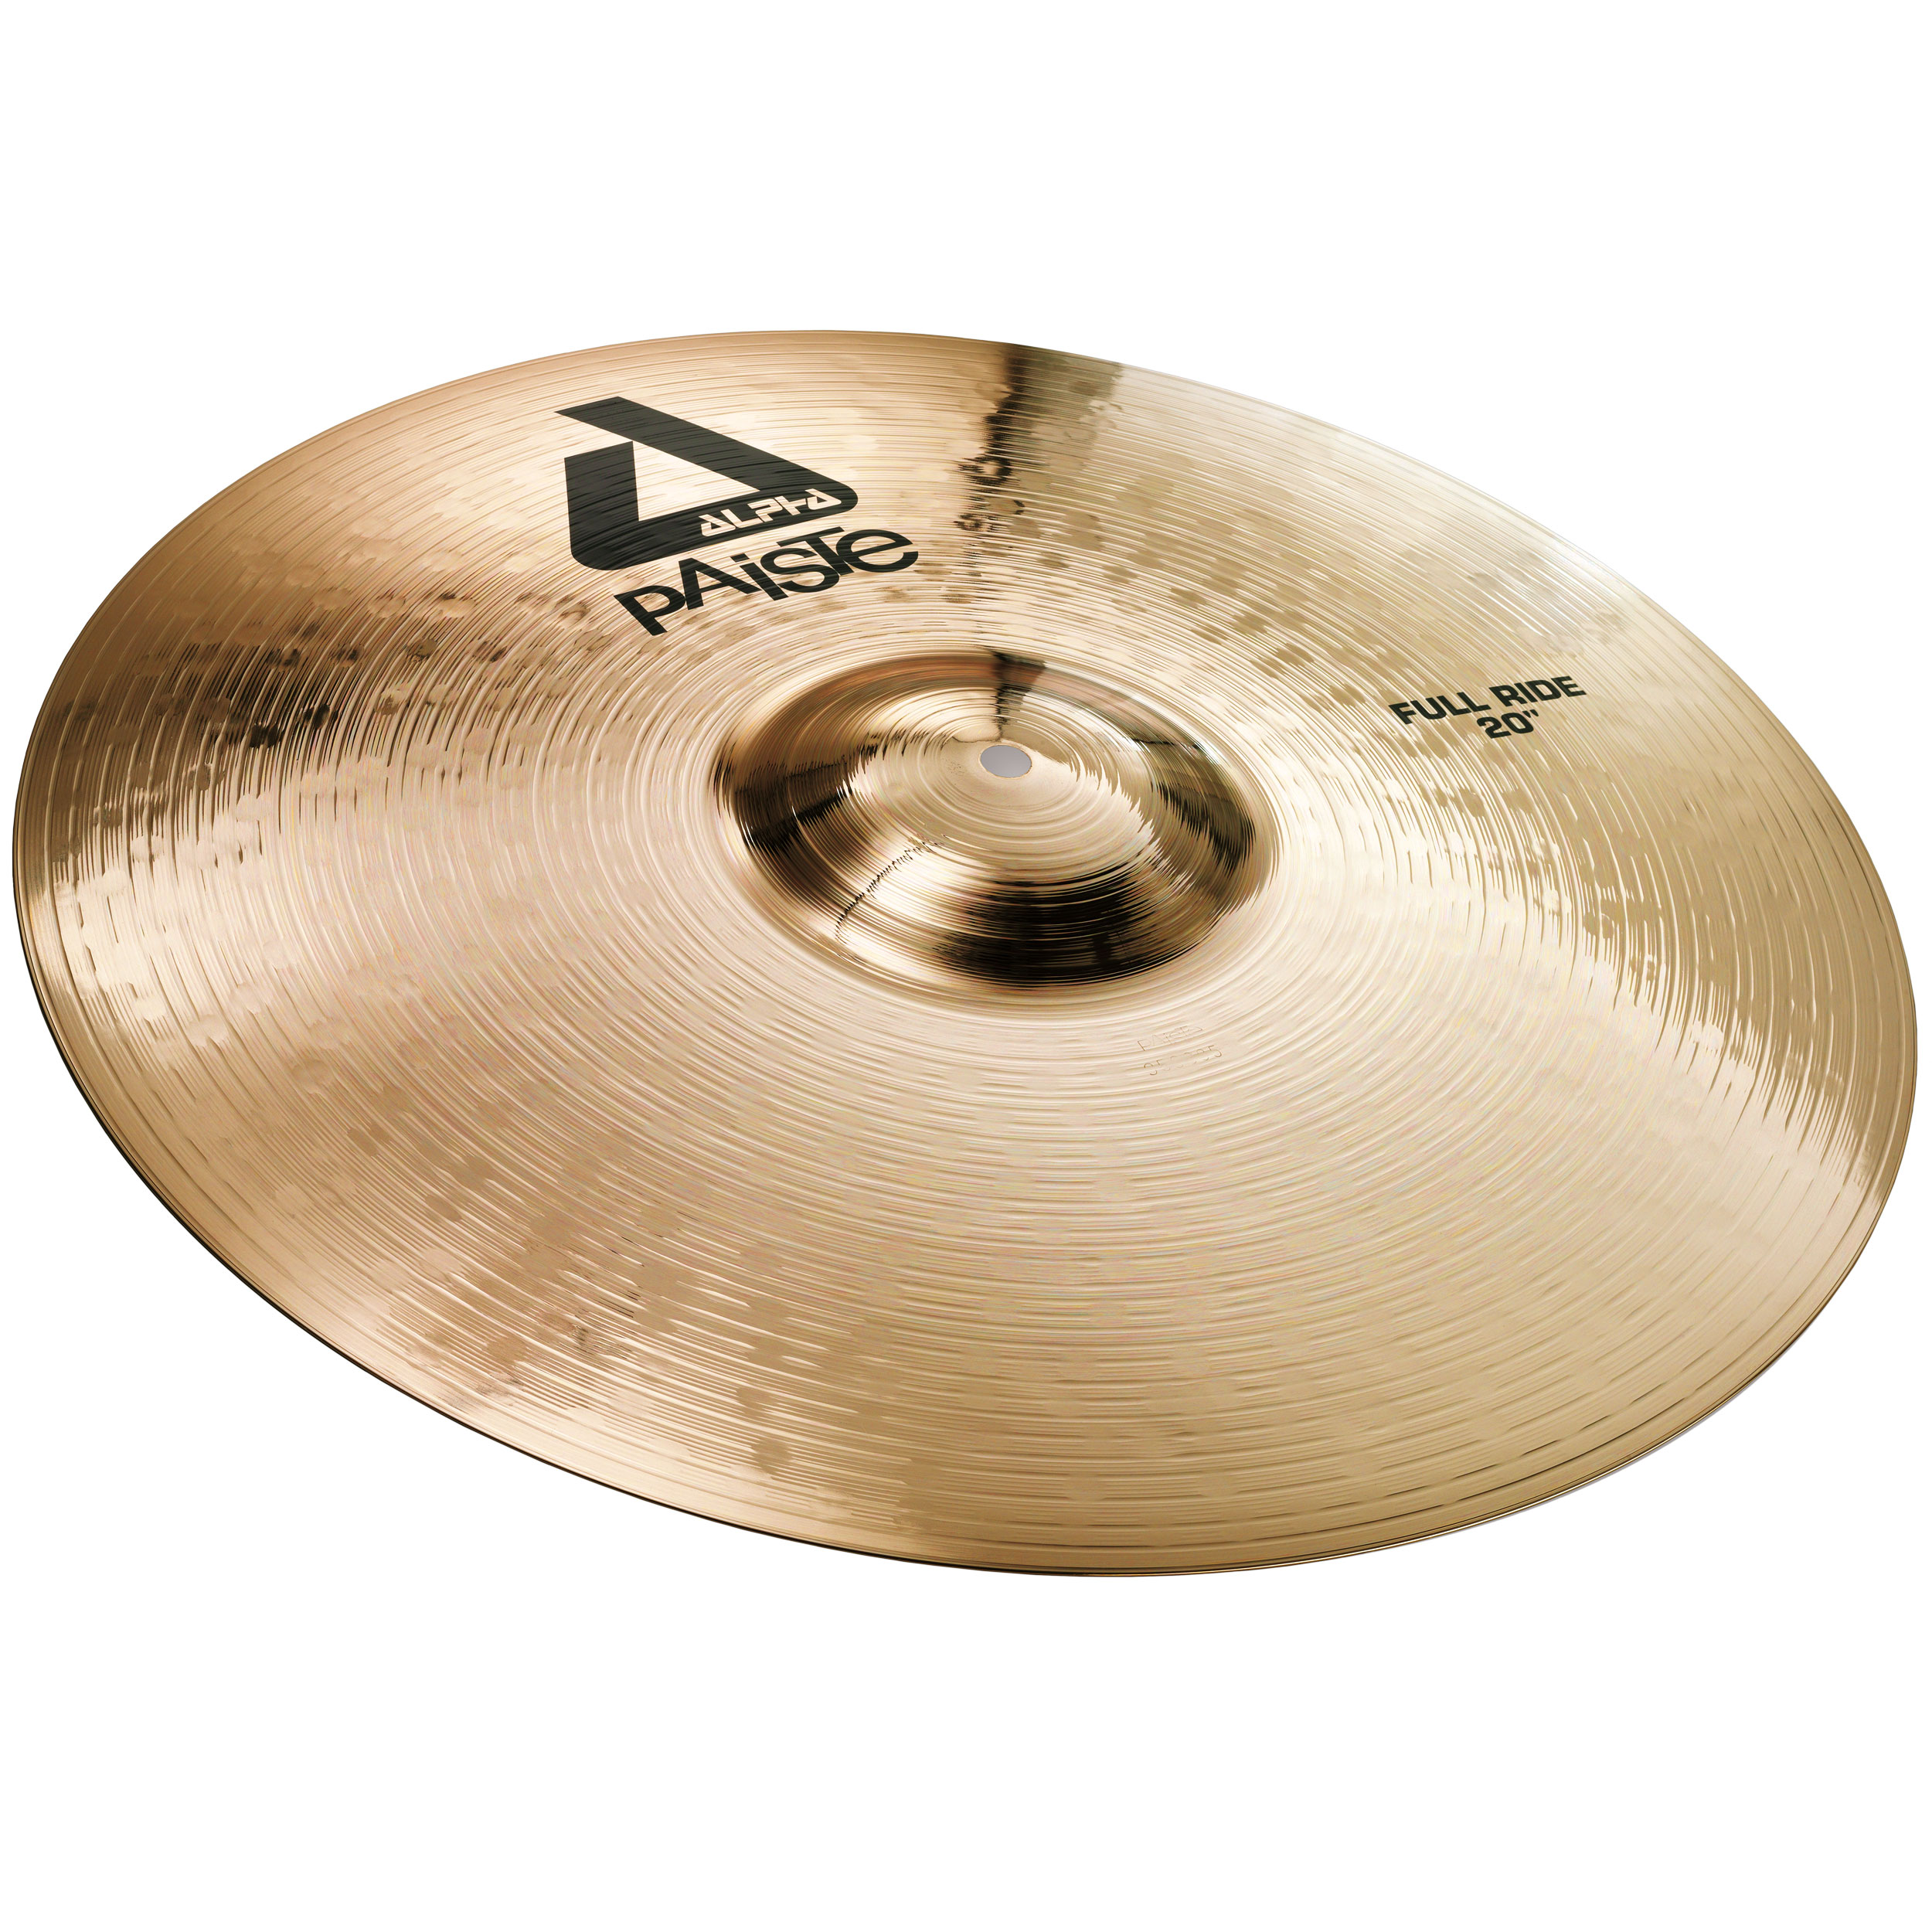 "Paiste 20"" Alpha Full Ride Cymbal with Brilliant Finish"